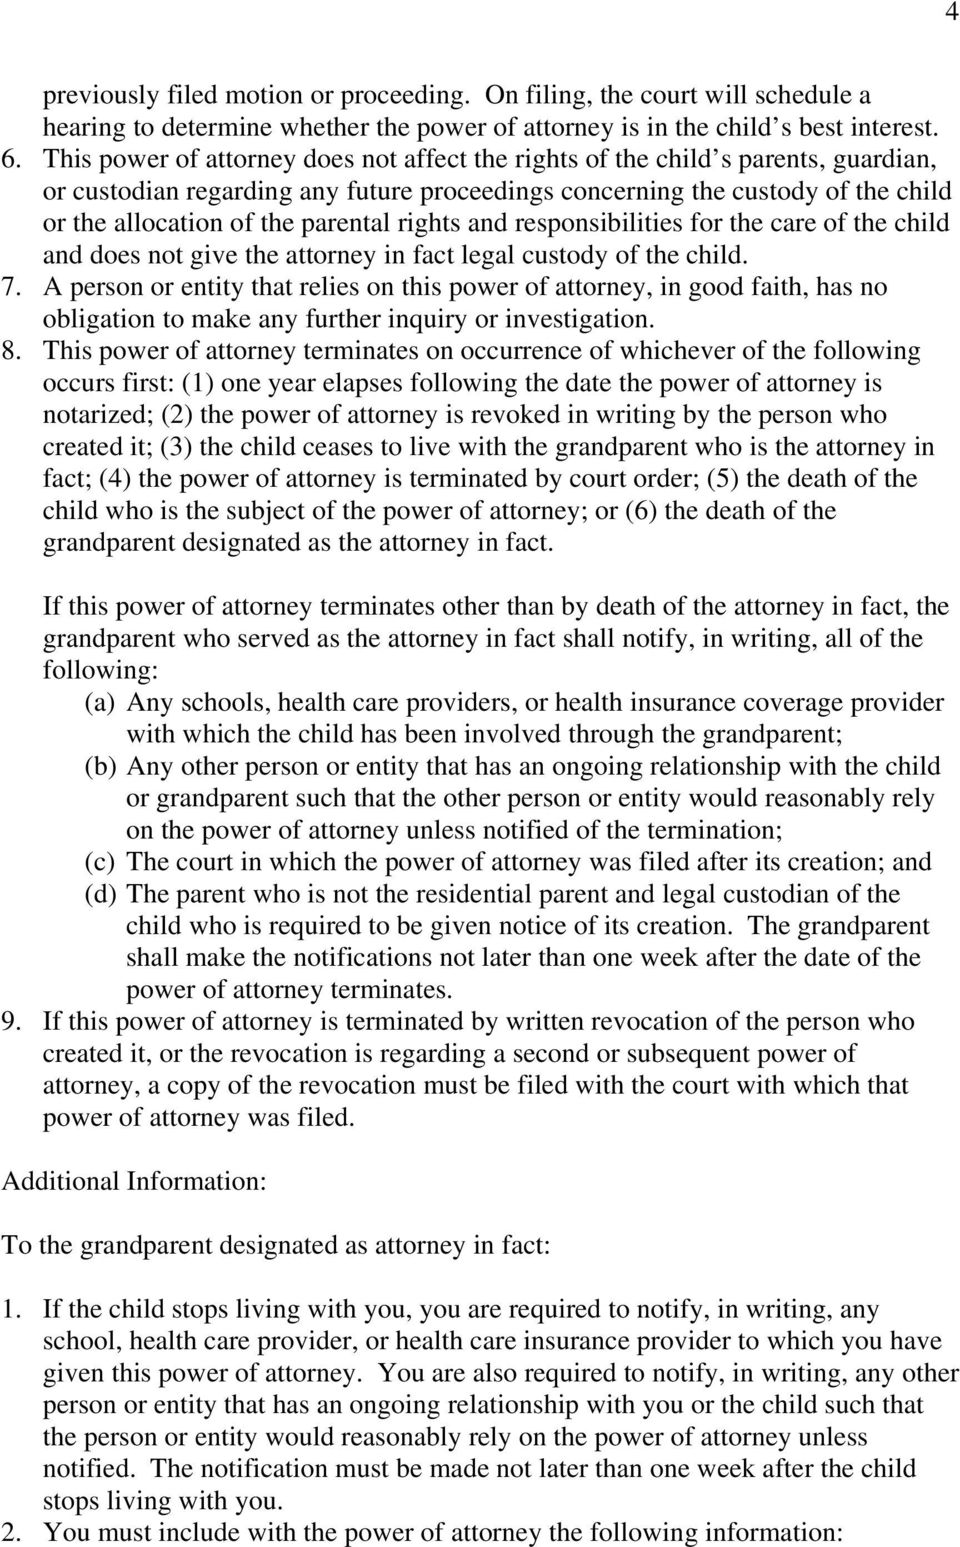 rights and responsibilities for the care of the child and does not give the atrney in fact legal cusdy of the child. 7.